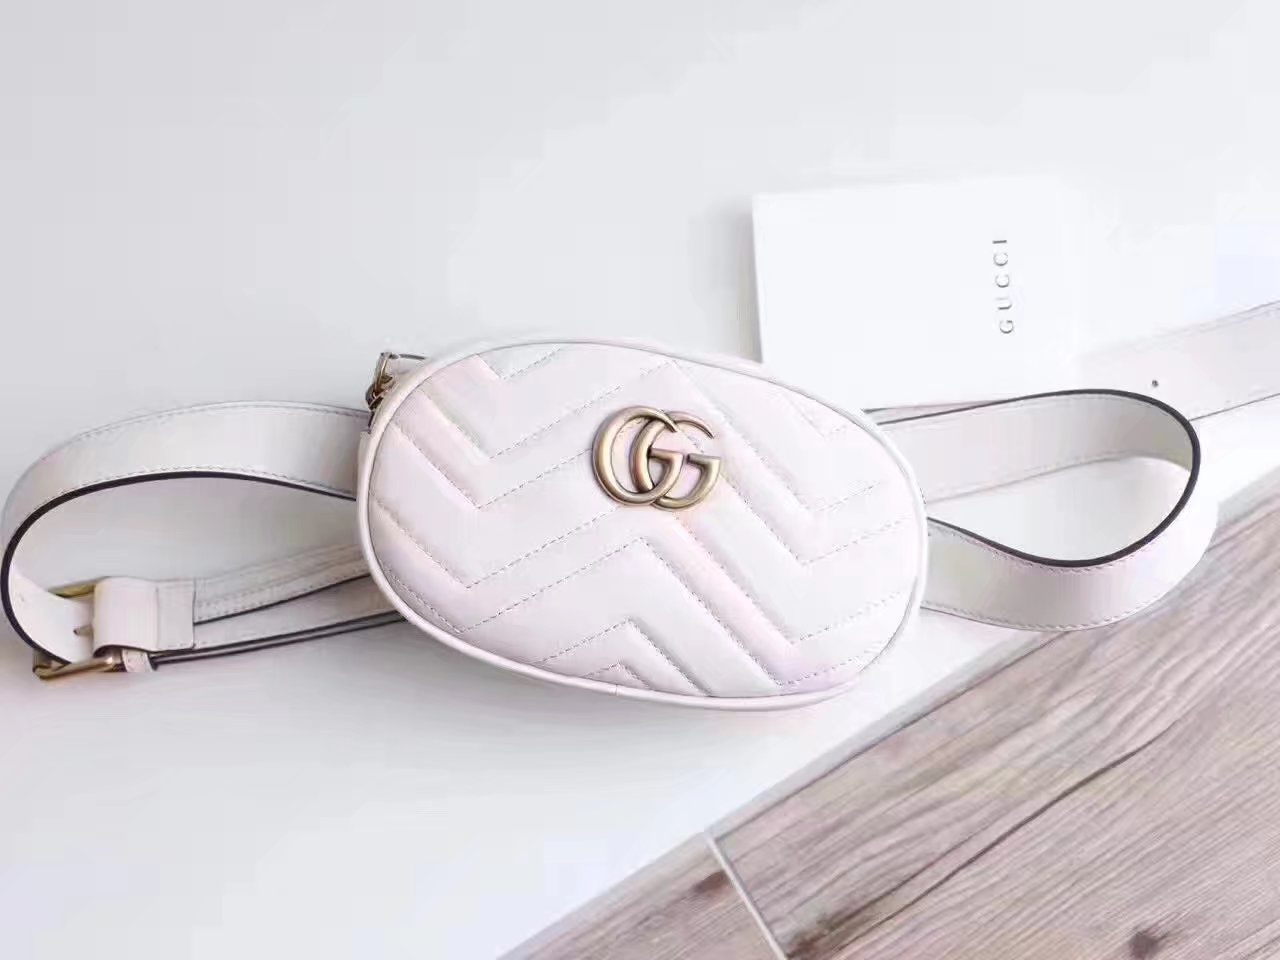 Gucci 476434 GG Marmont Matelassé Leather Belt Bag White